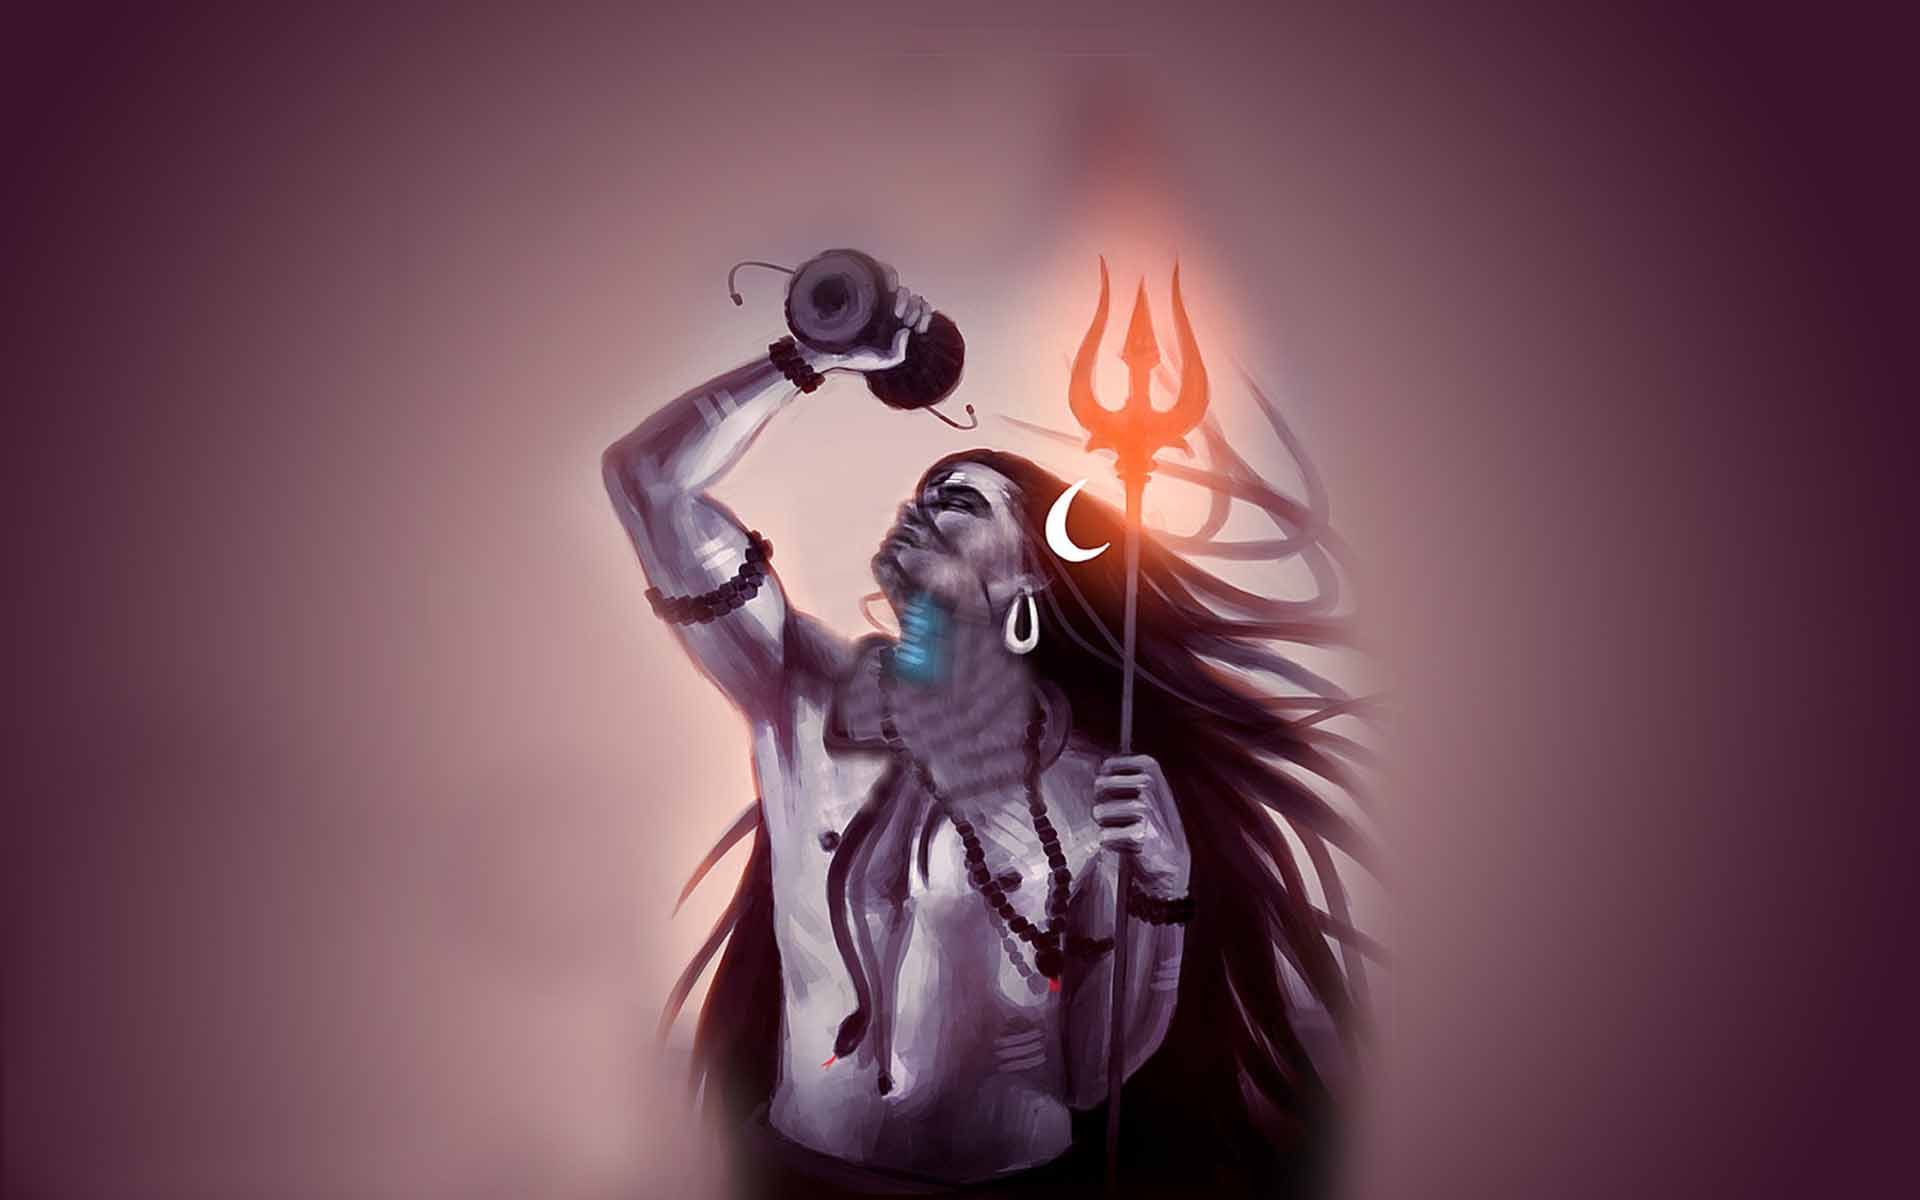 Shiva Animated Wallpaper HD